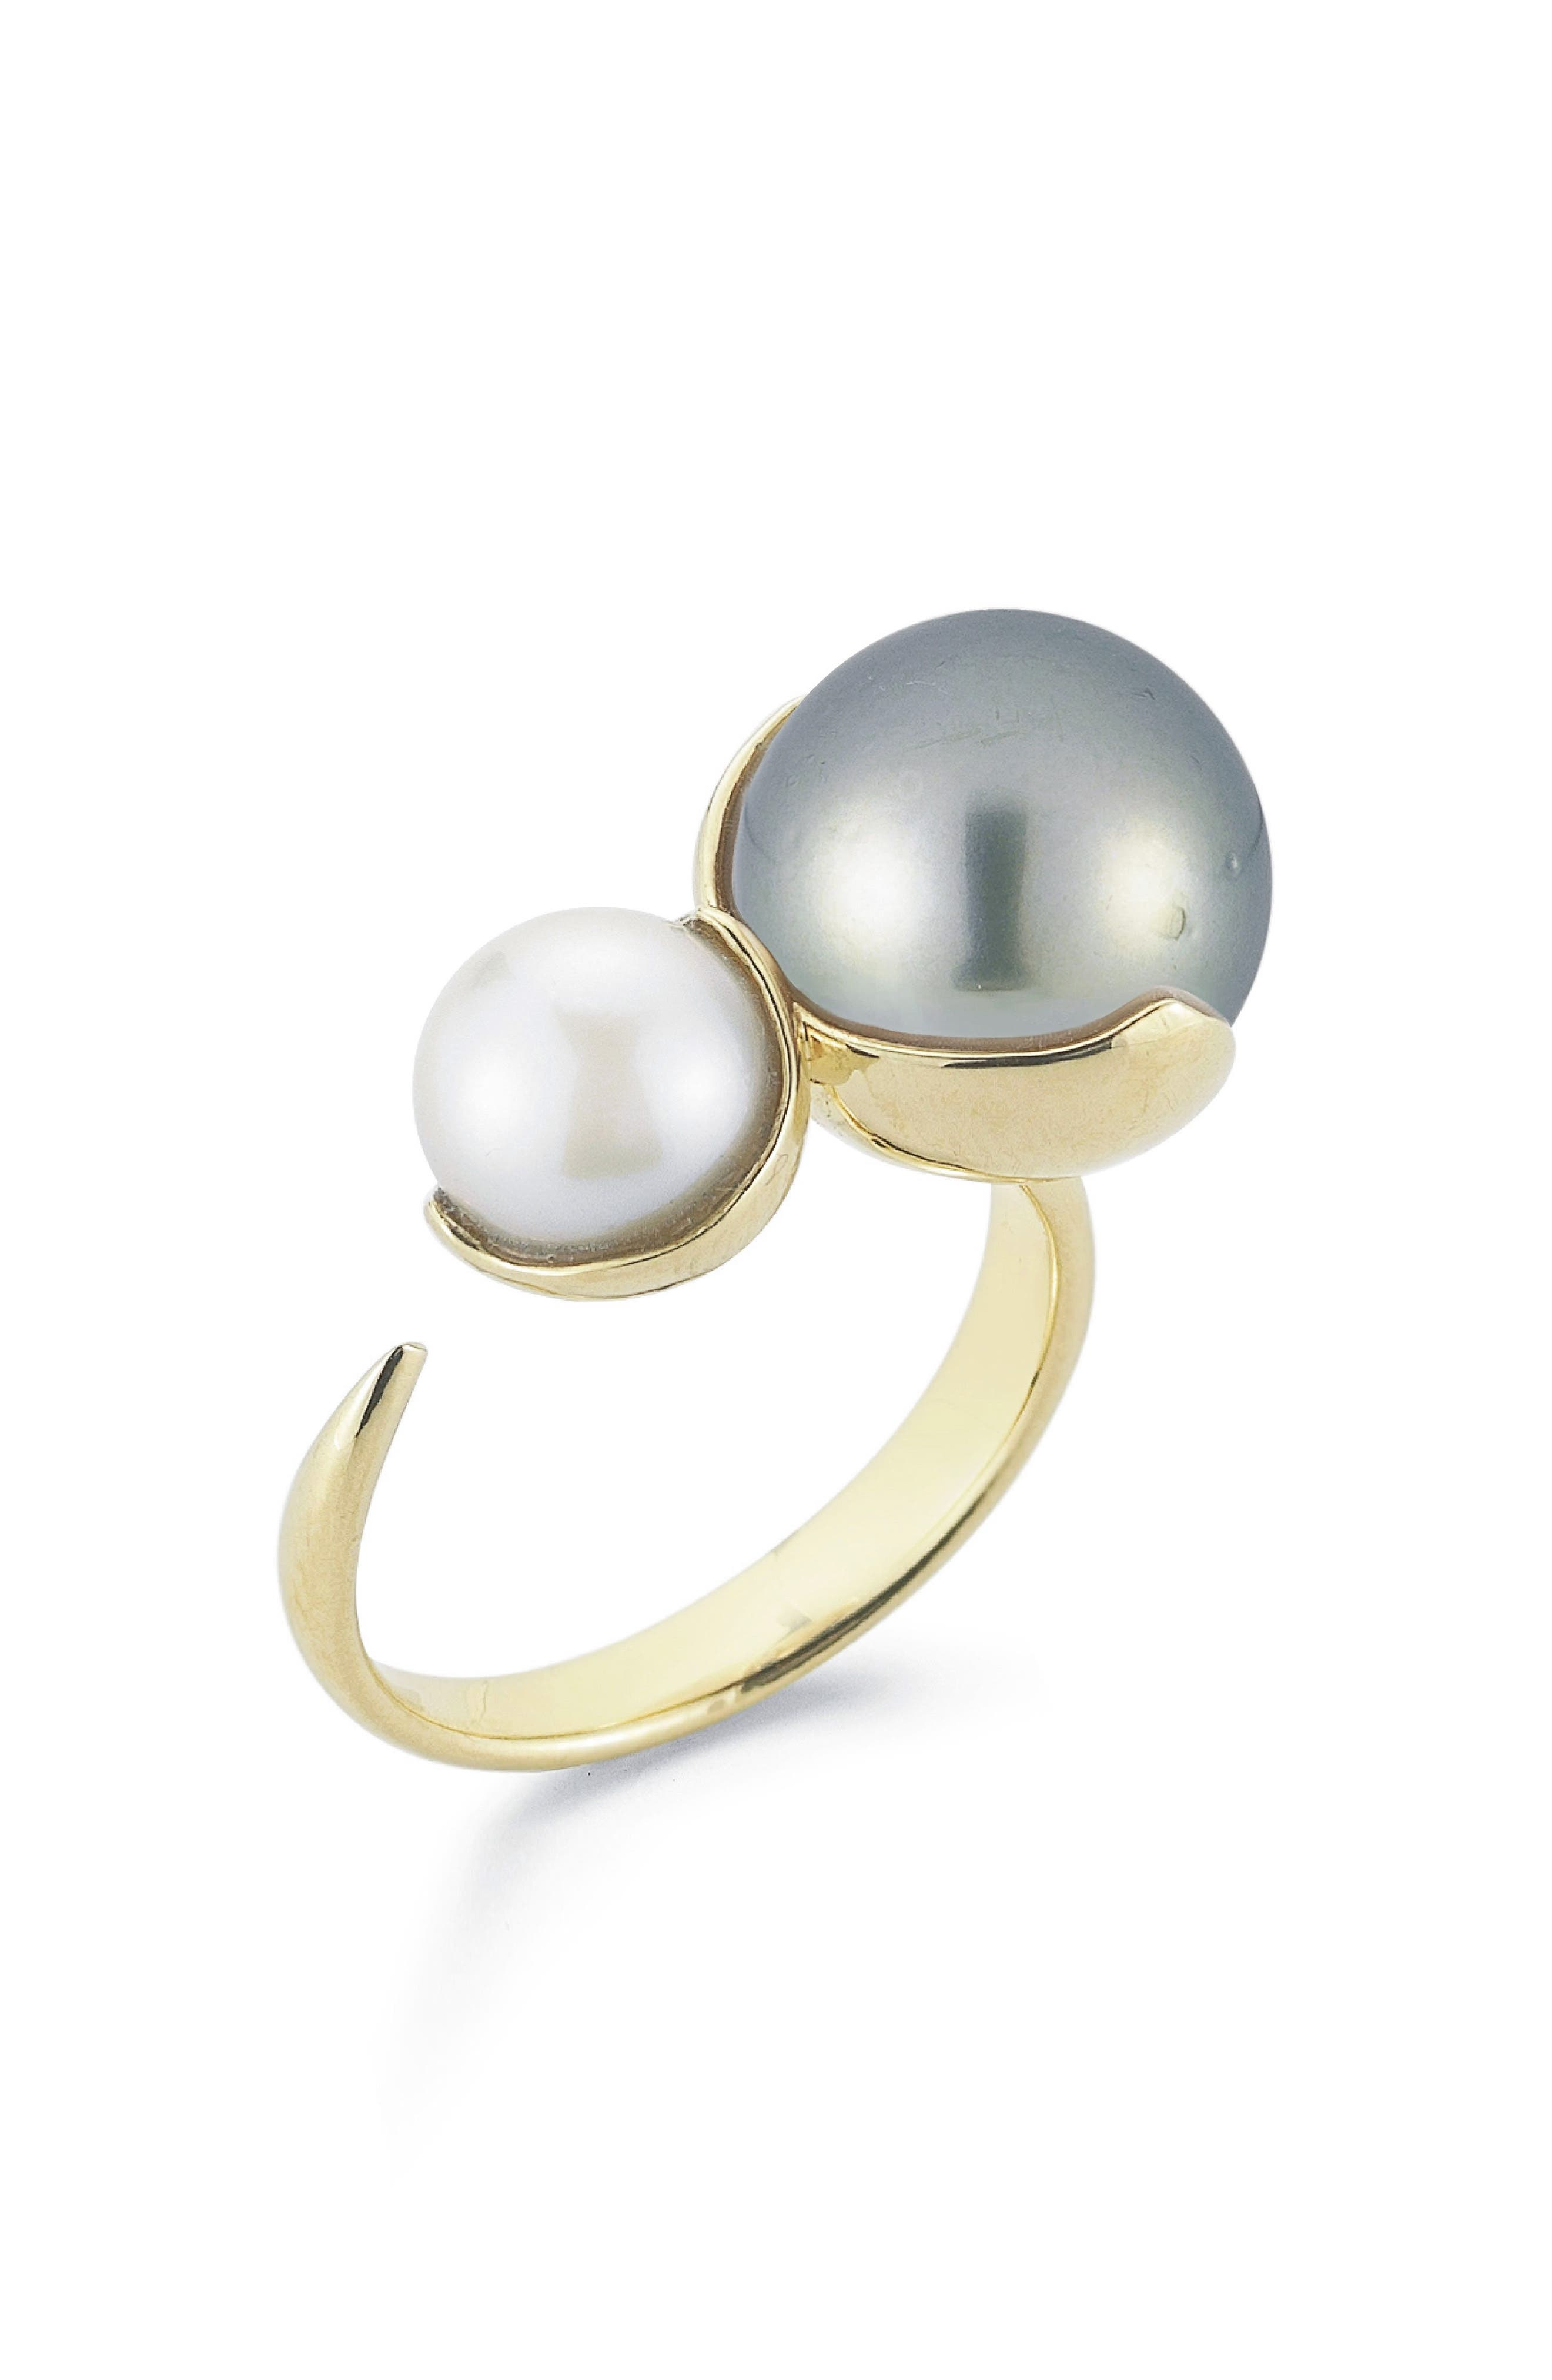 Openwork Pearl Ring,                             Main thumbnail 1, color,                             White Pearl/ Black Pearl